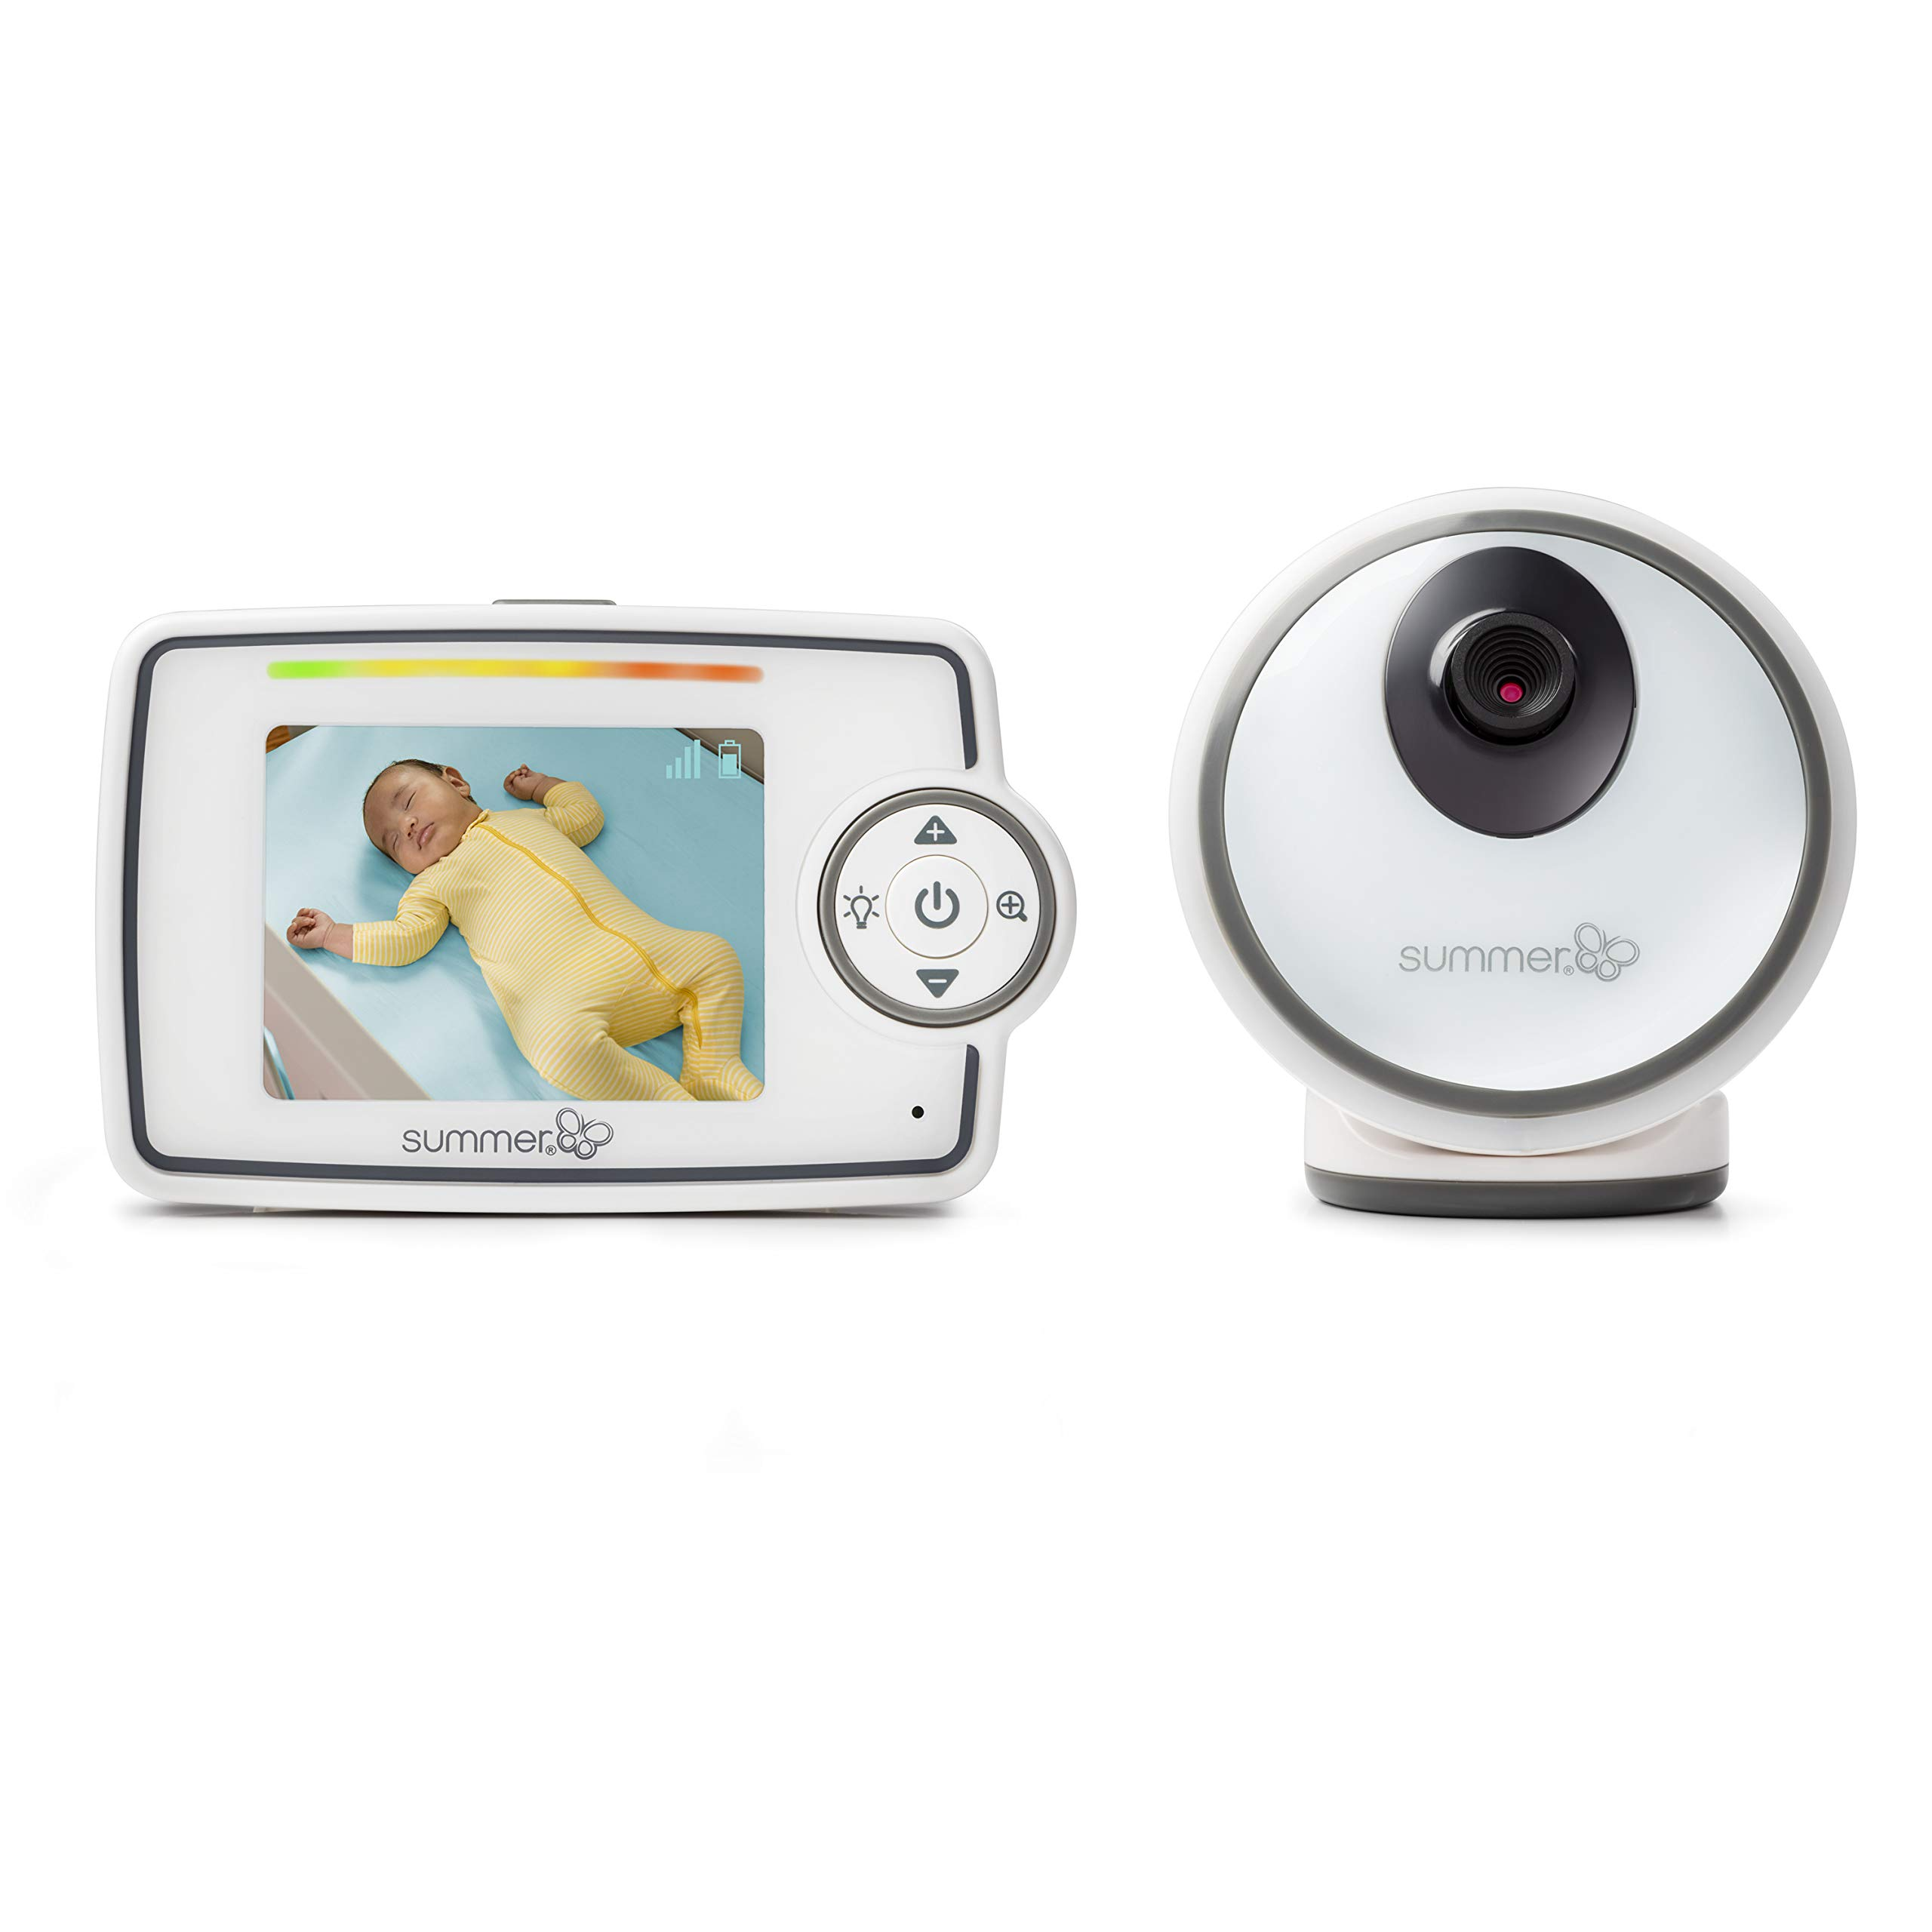 Summer Glimpse Video Baby Monitor with 2.8-inch LCD Color Screen and Remote Steering Camera - Baby Video Monitor with Remote Digital Zoom and Voice Activated On/Off Technology by Summer Infant (Image #1)